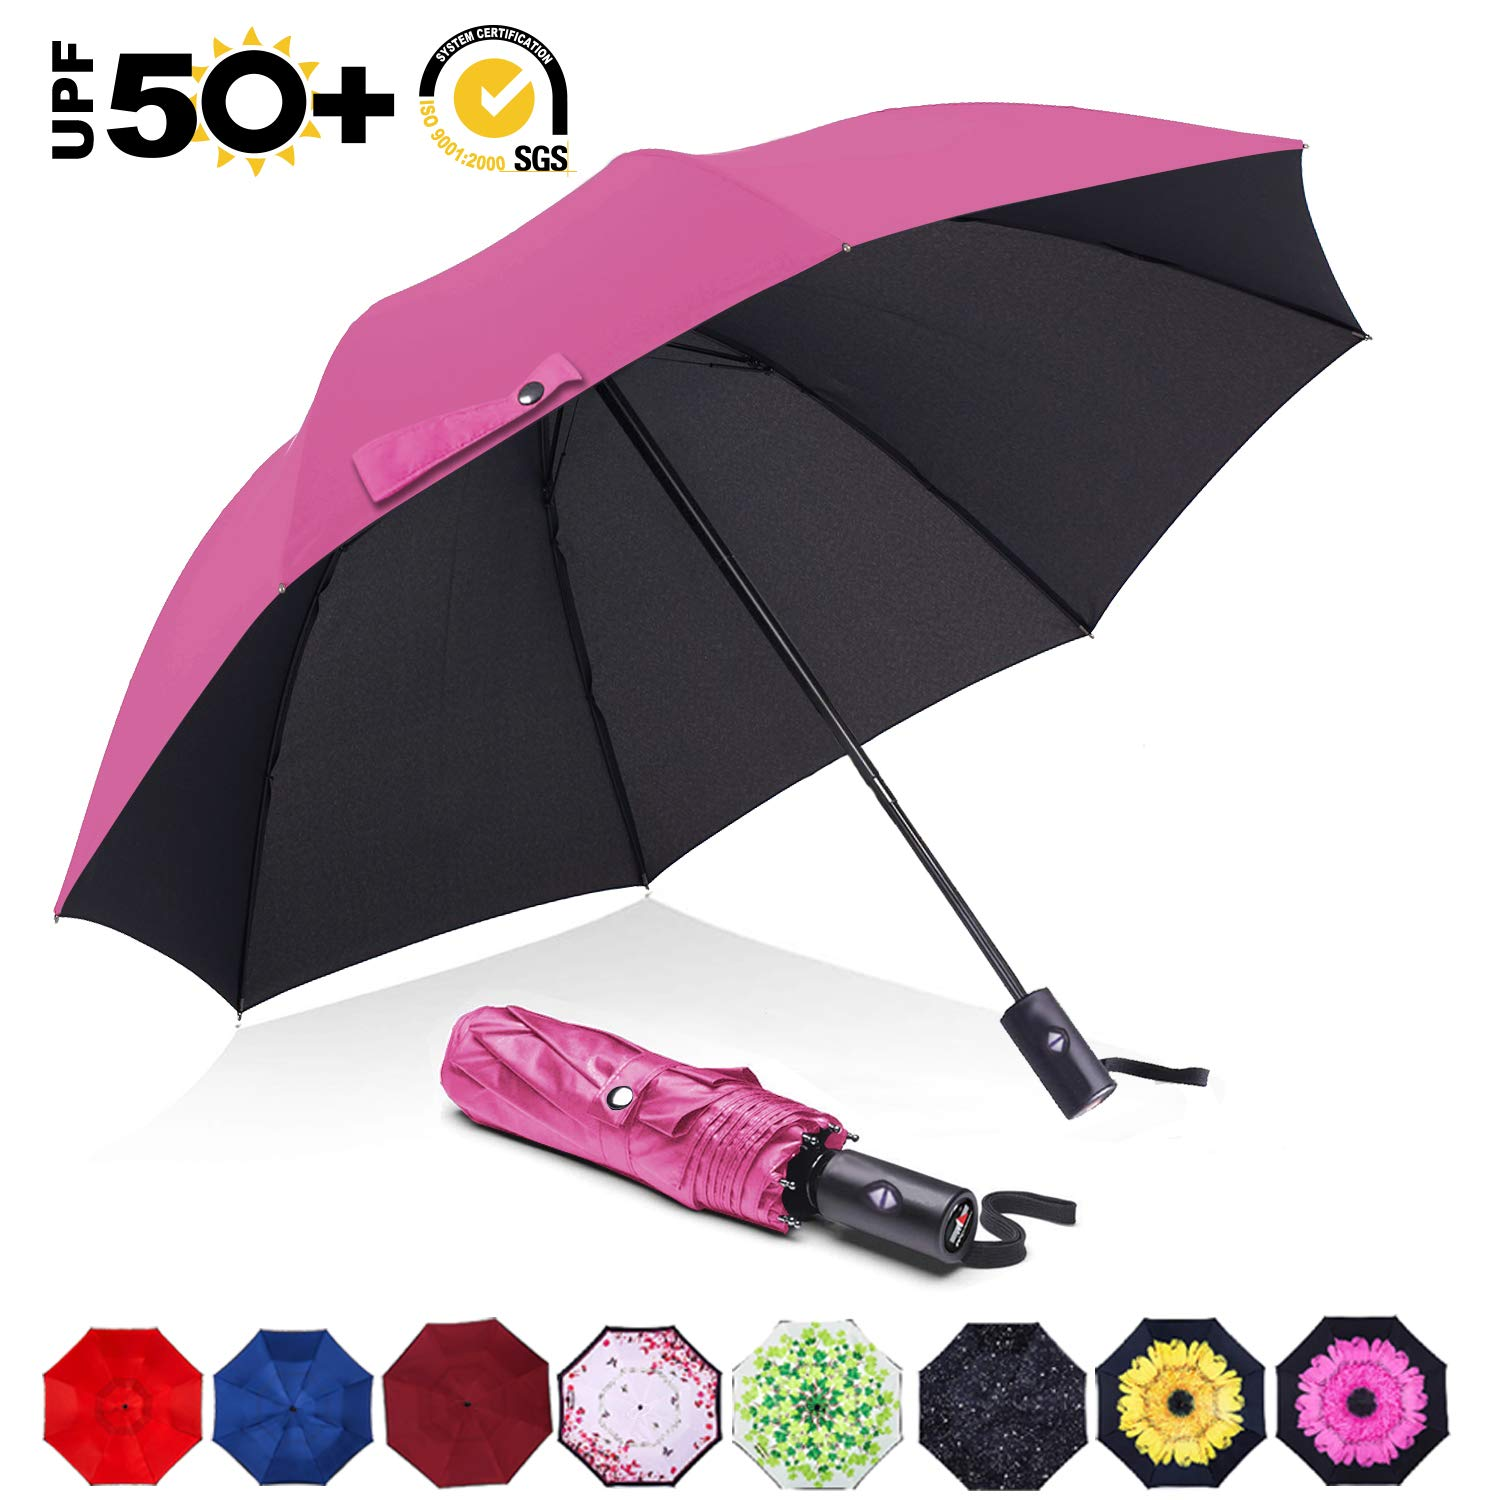 "CDM product ABCCANOPY Umbrella Compact Rain&Wind Teflon Repellent Umbrellas Sun Protection with Black Glue Anti UV Coating Travel Auto Folding Umbrella, Blocking UV 99.98%,39"",Peach pink big image"